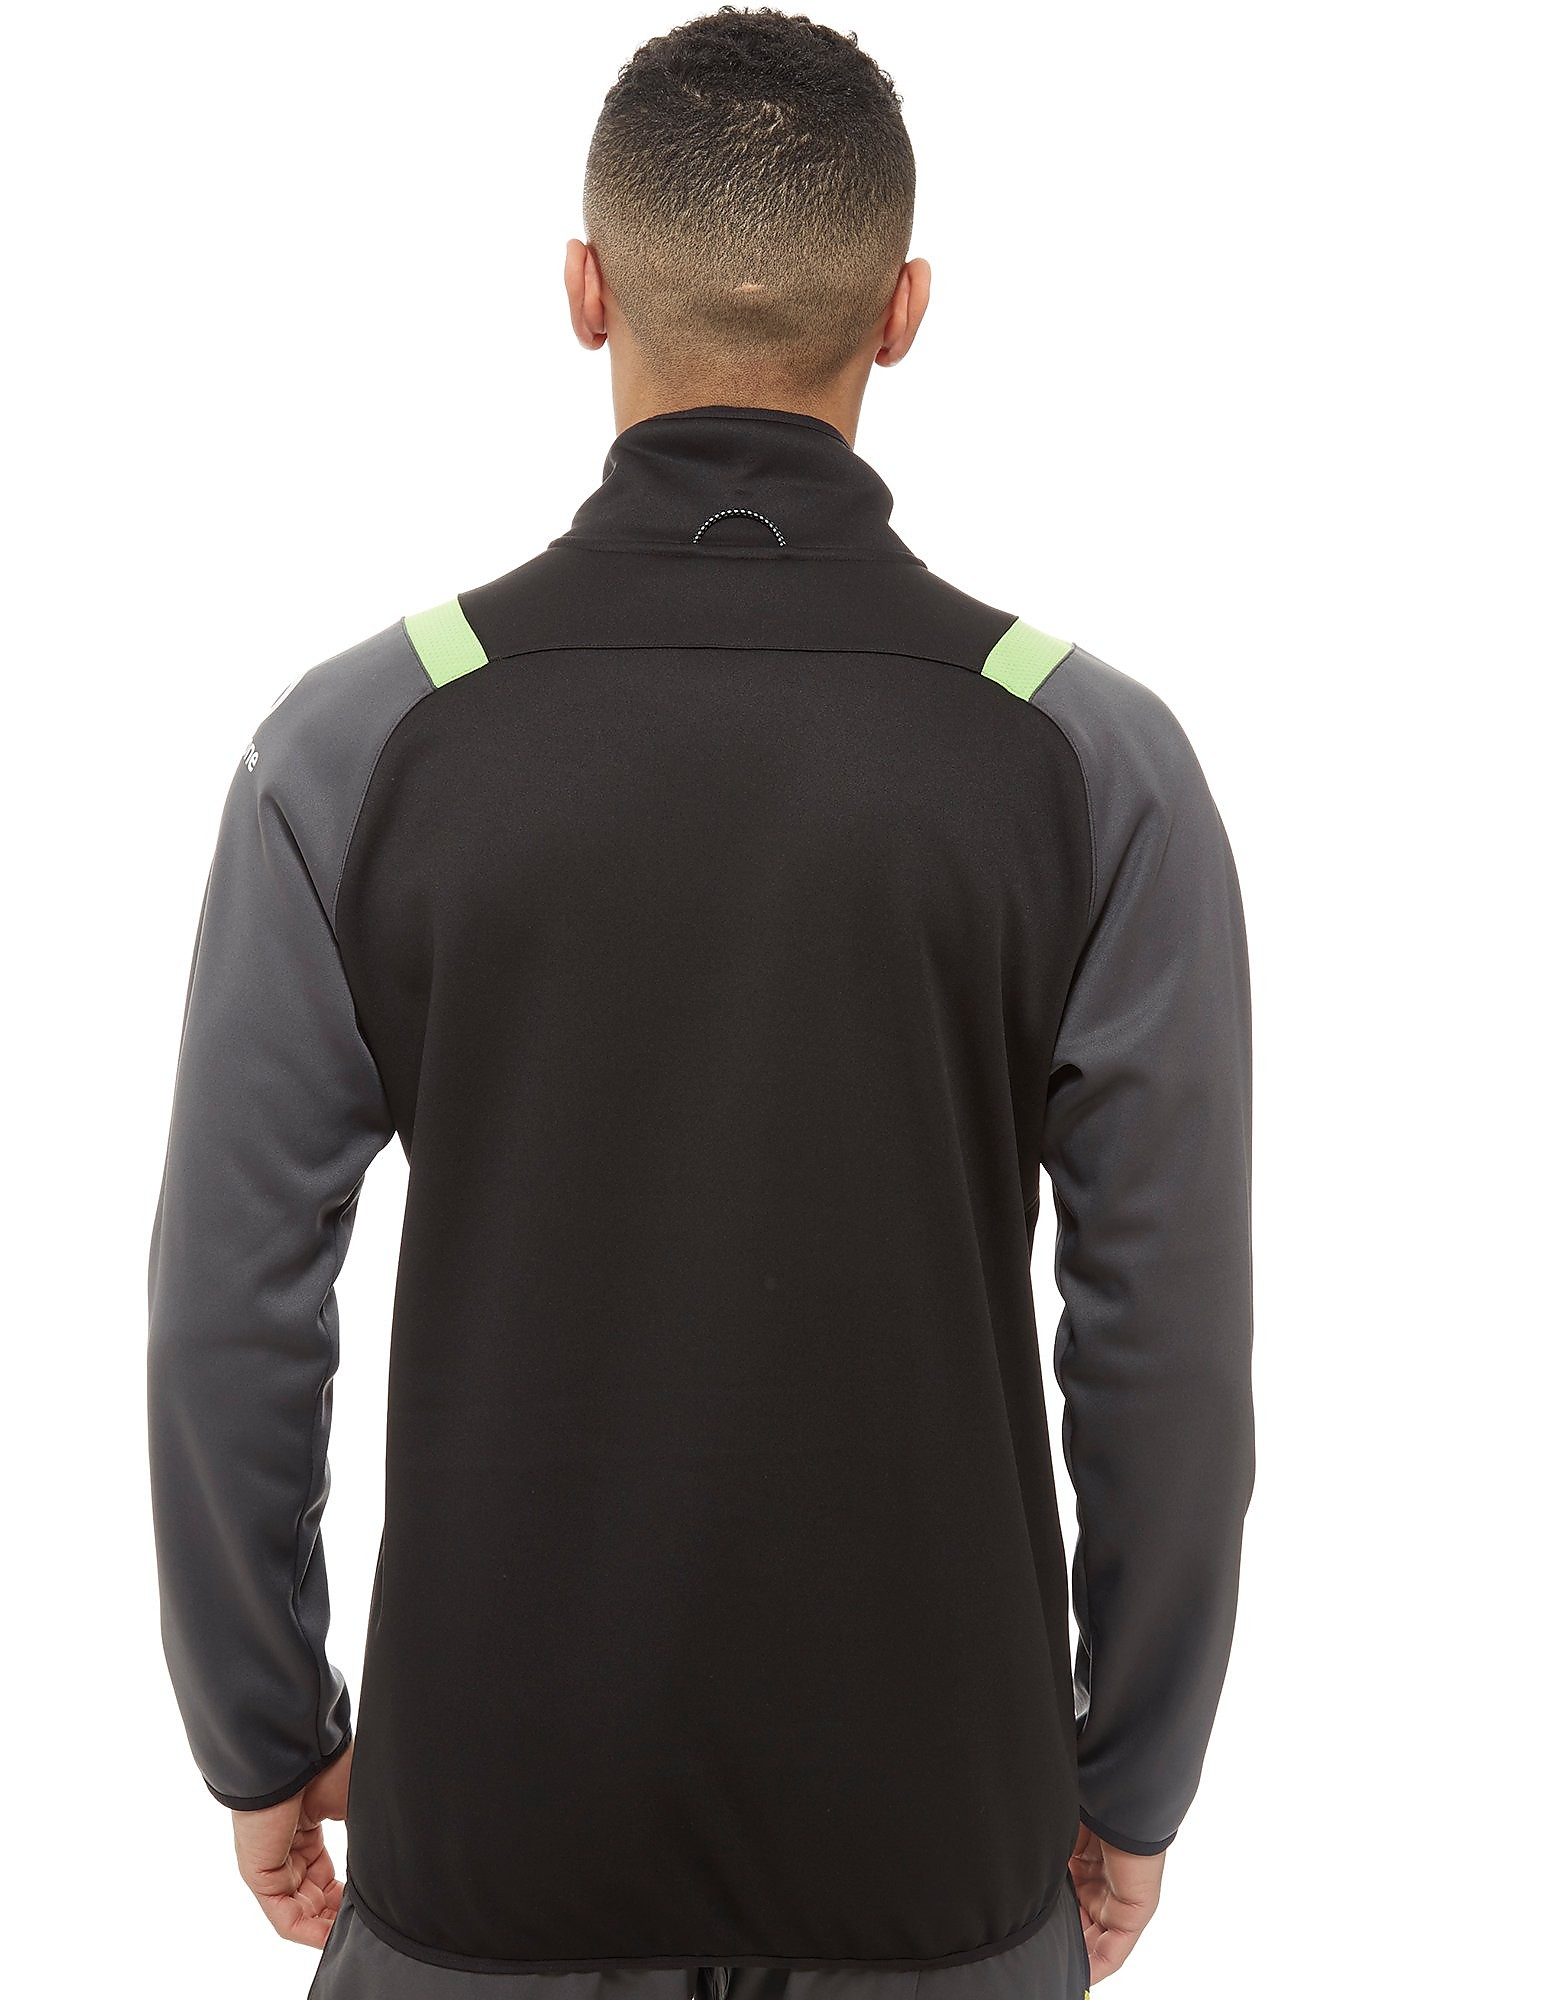 Canterbury Ireland RFU Thermal 1/2 Zip Sweatshirt